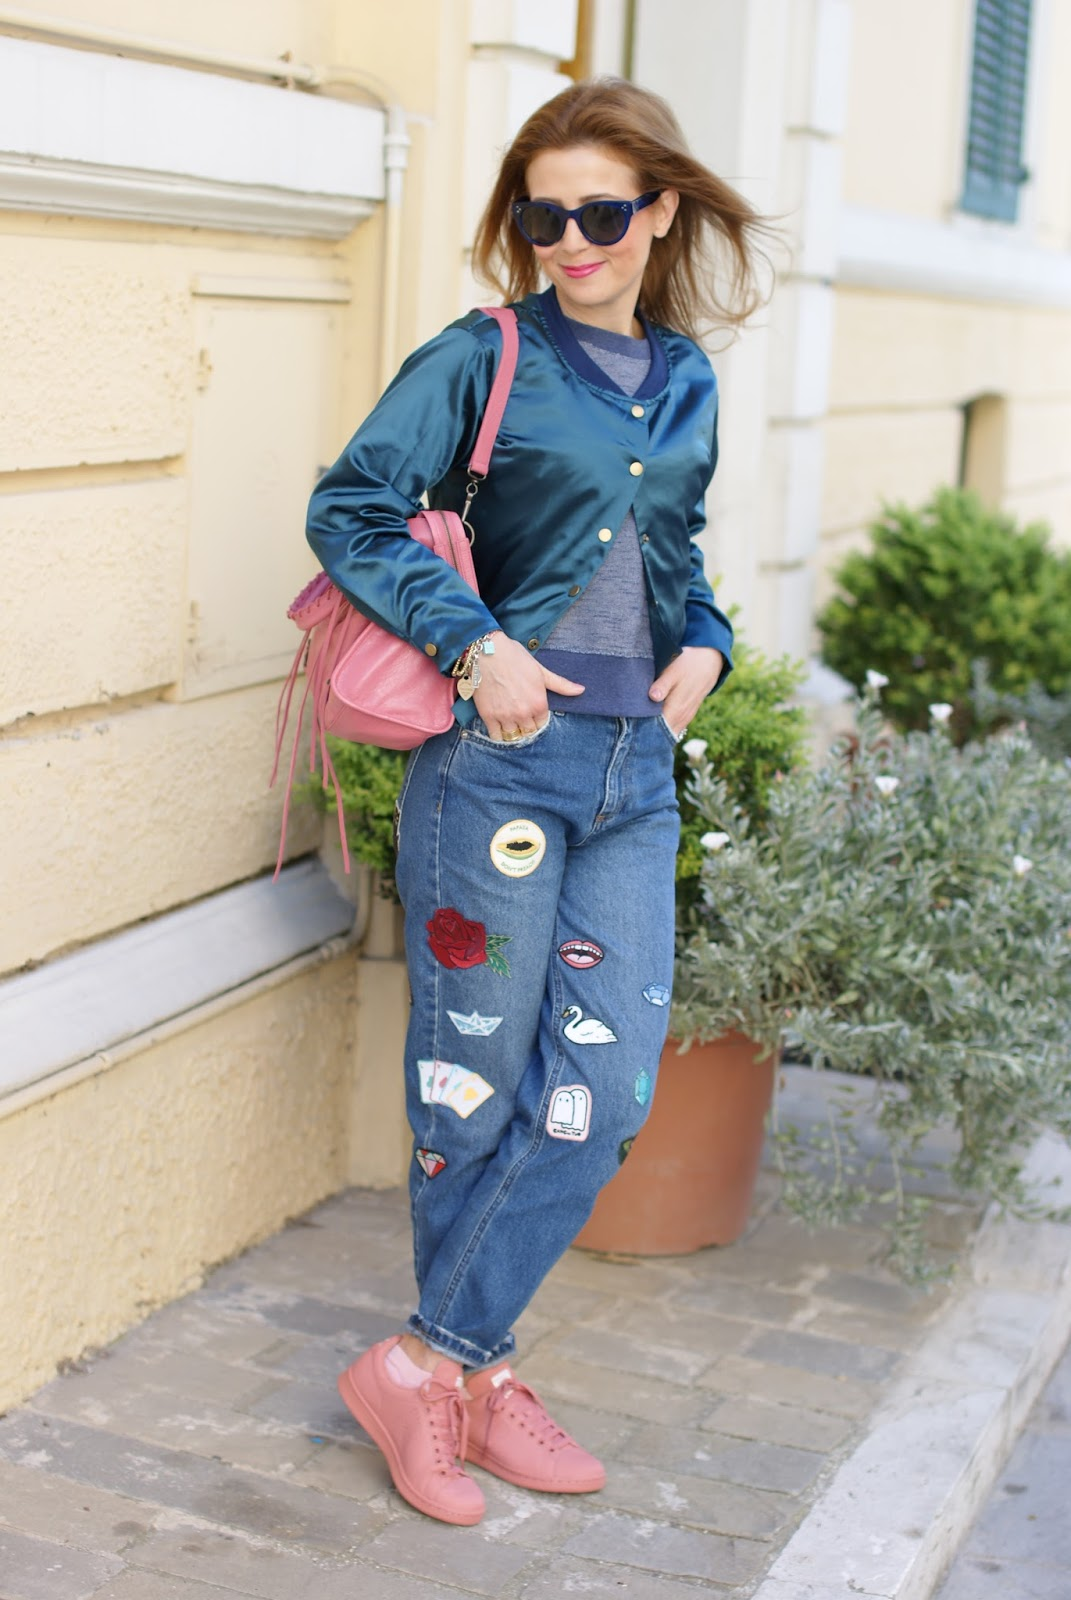 Satin bomber, pink Raf Simons x Adidas Stan Smith sneakers and mom patched jeans on Fashion and Cookies fashion blog, fashion blogger style